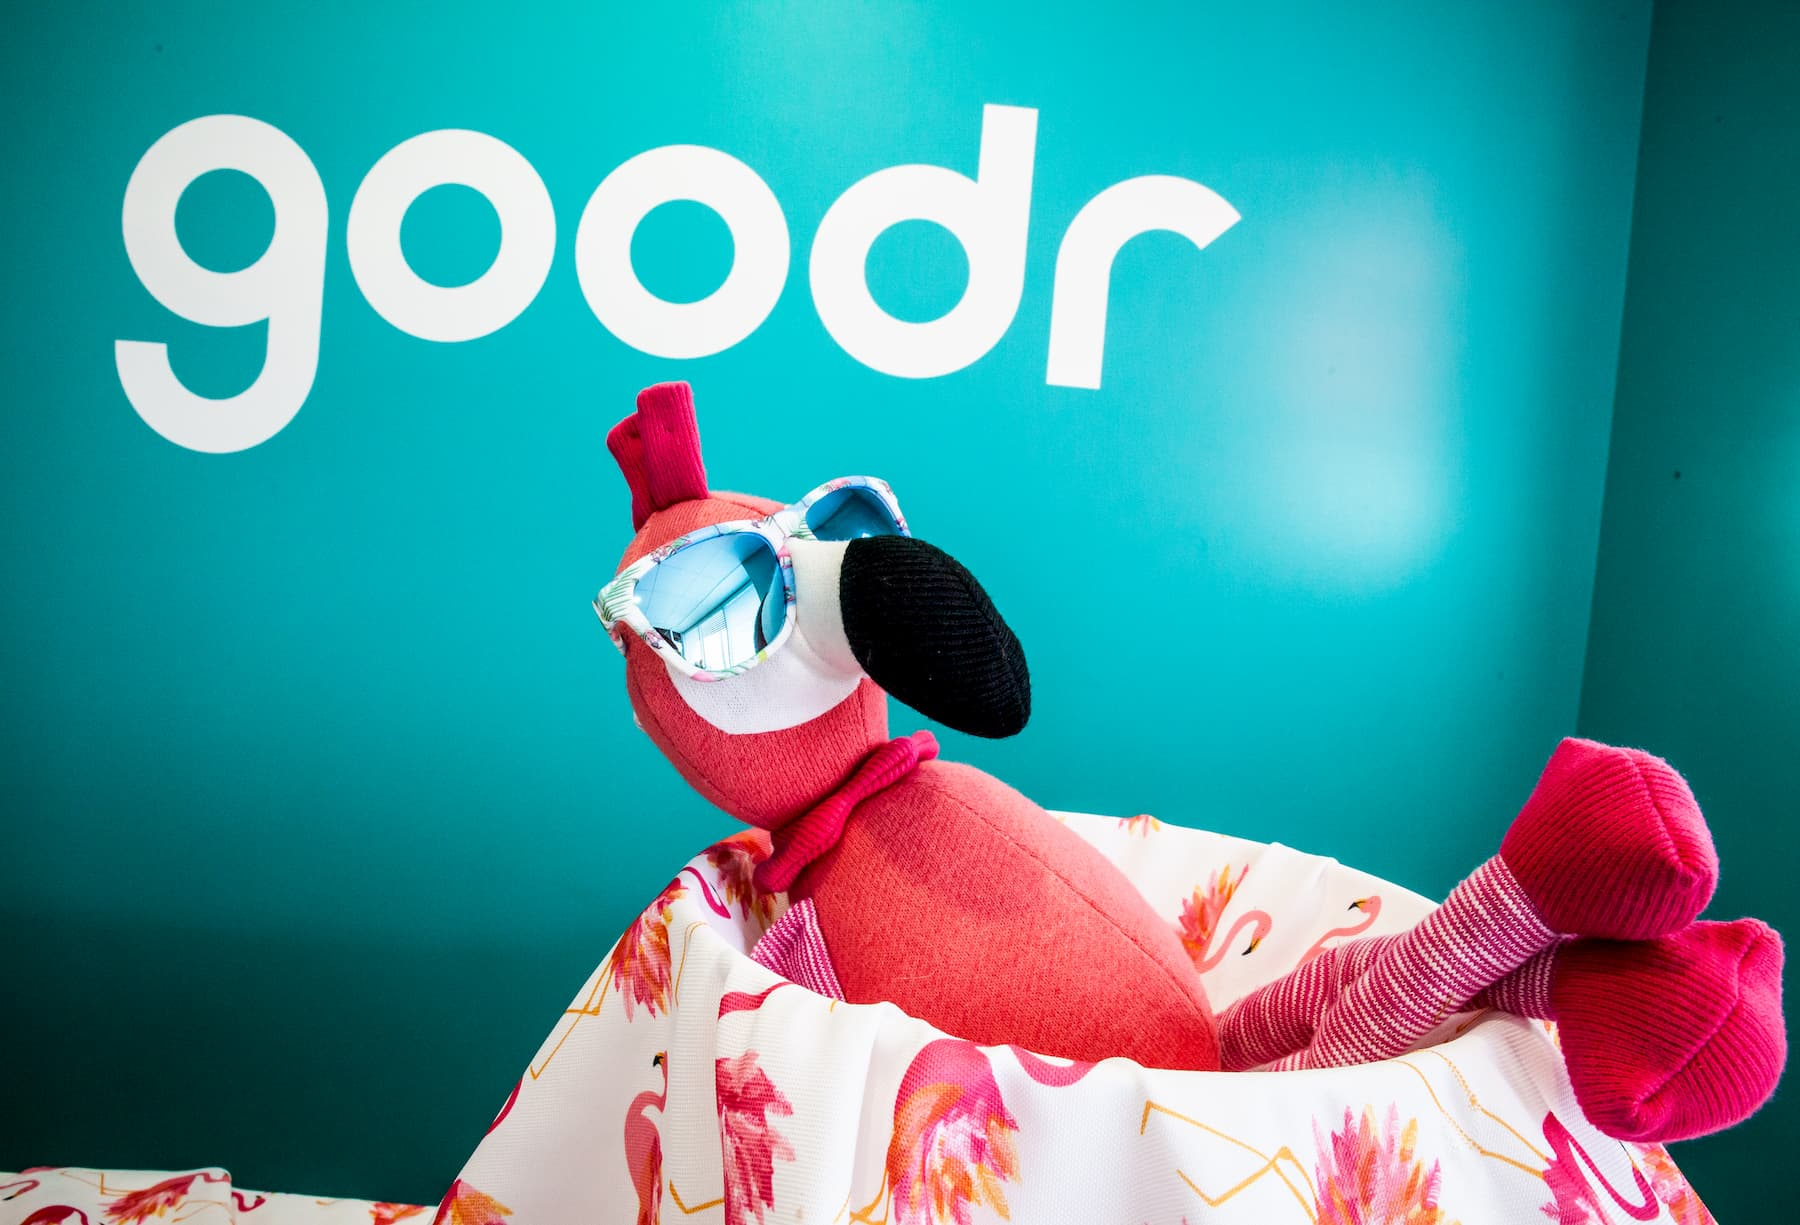 Flamingo in goodr sunglasses at goodr